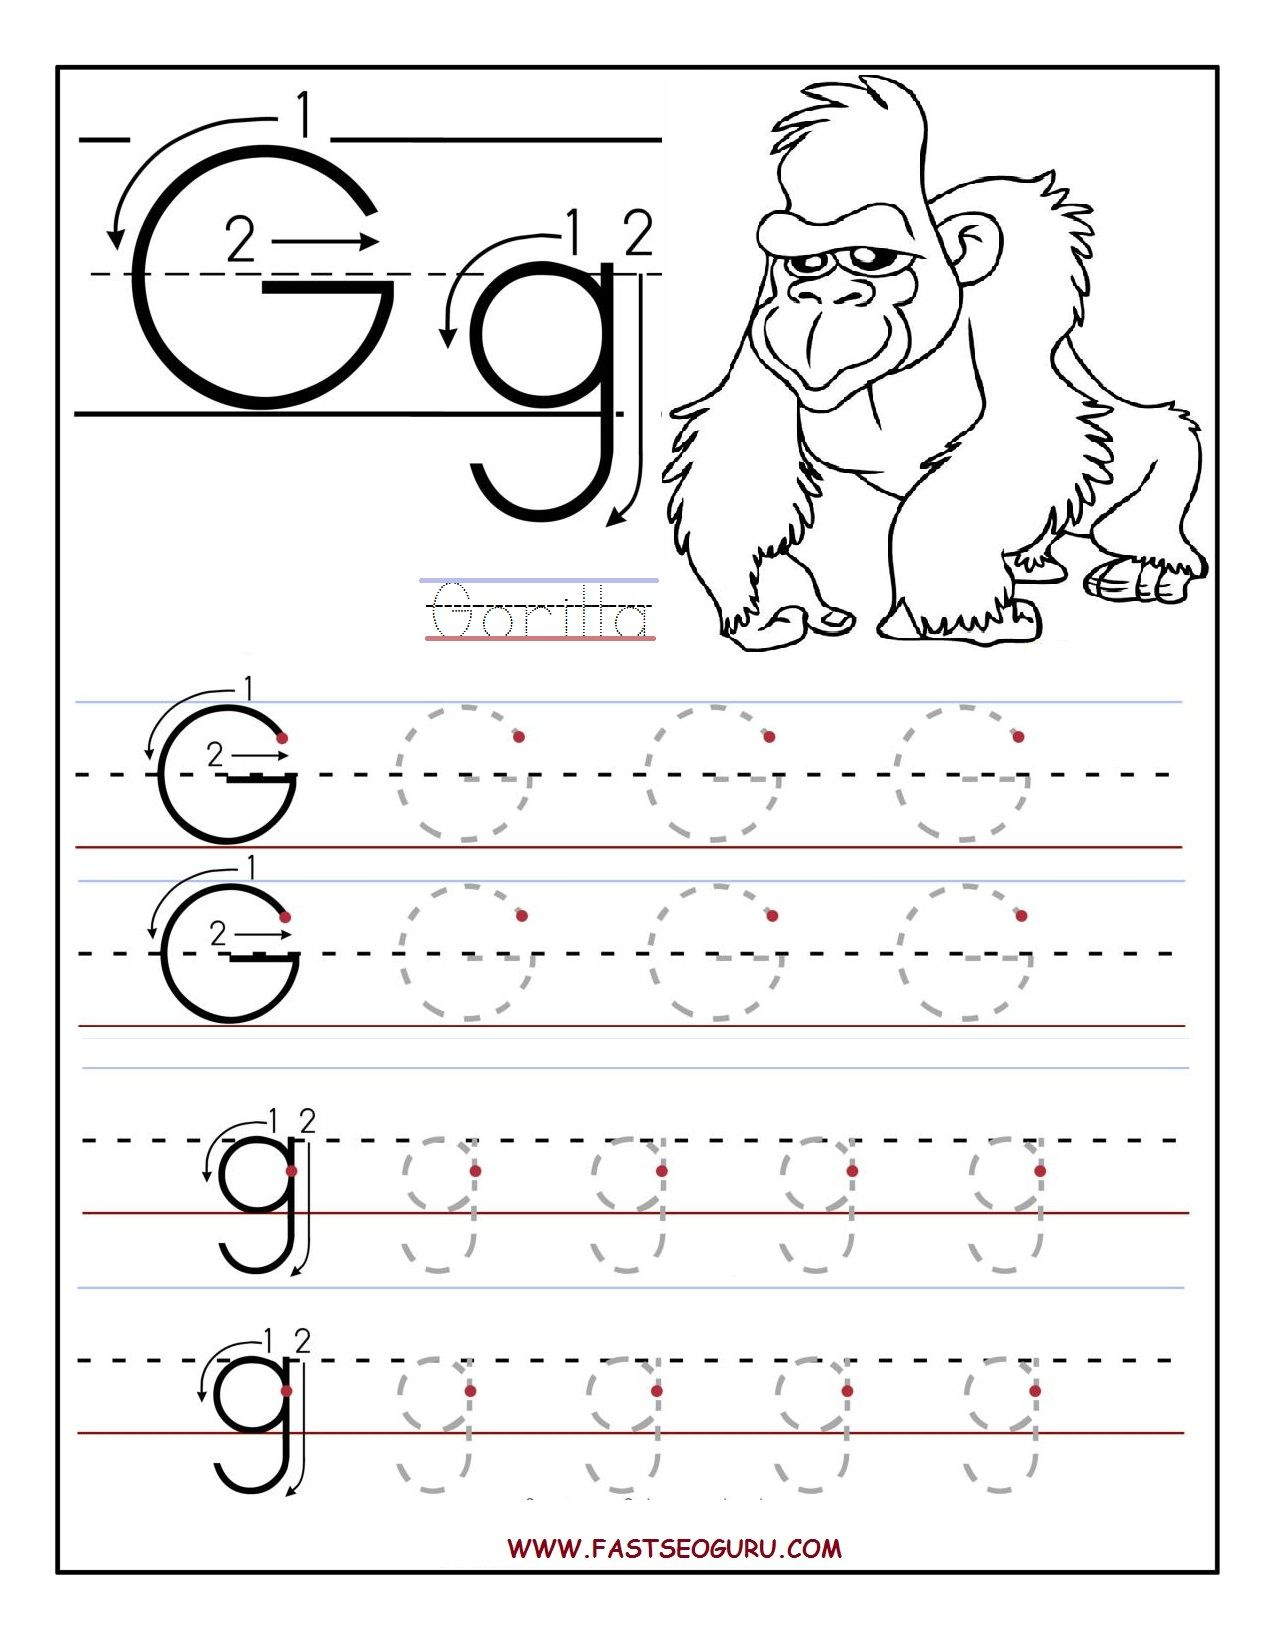 Letter G Tracing Preschool